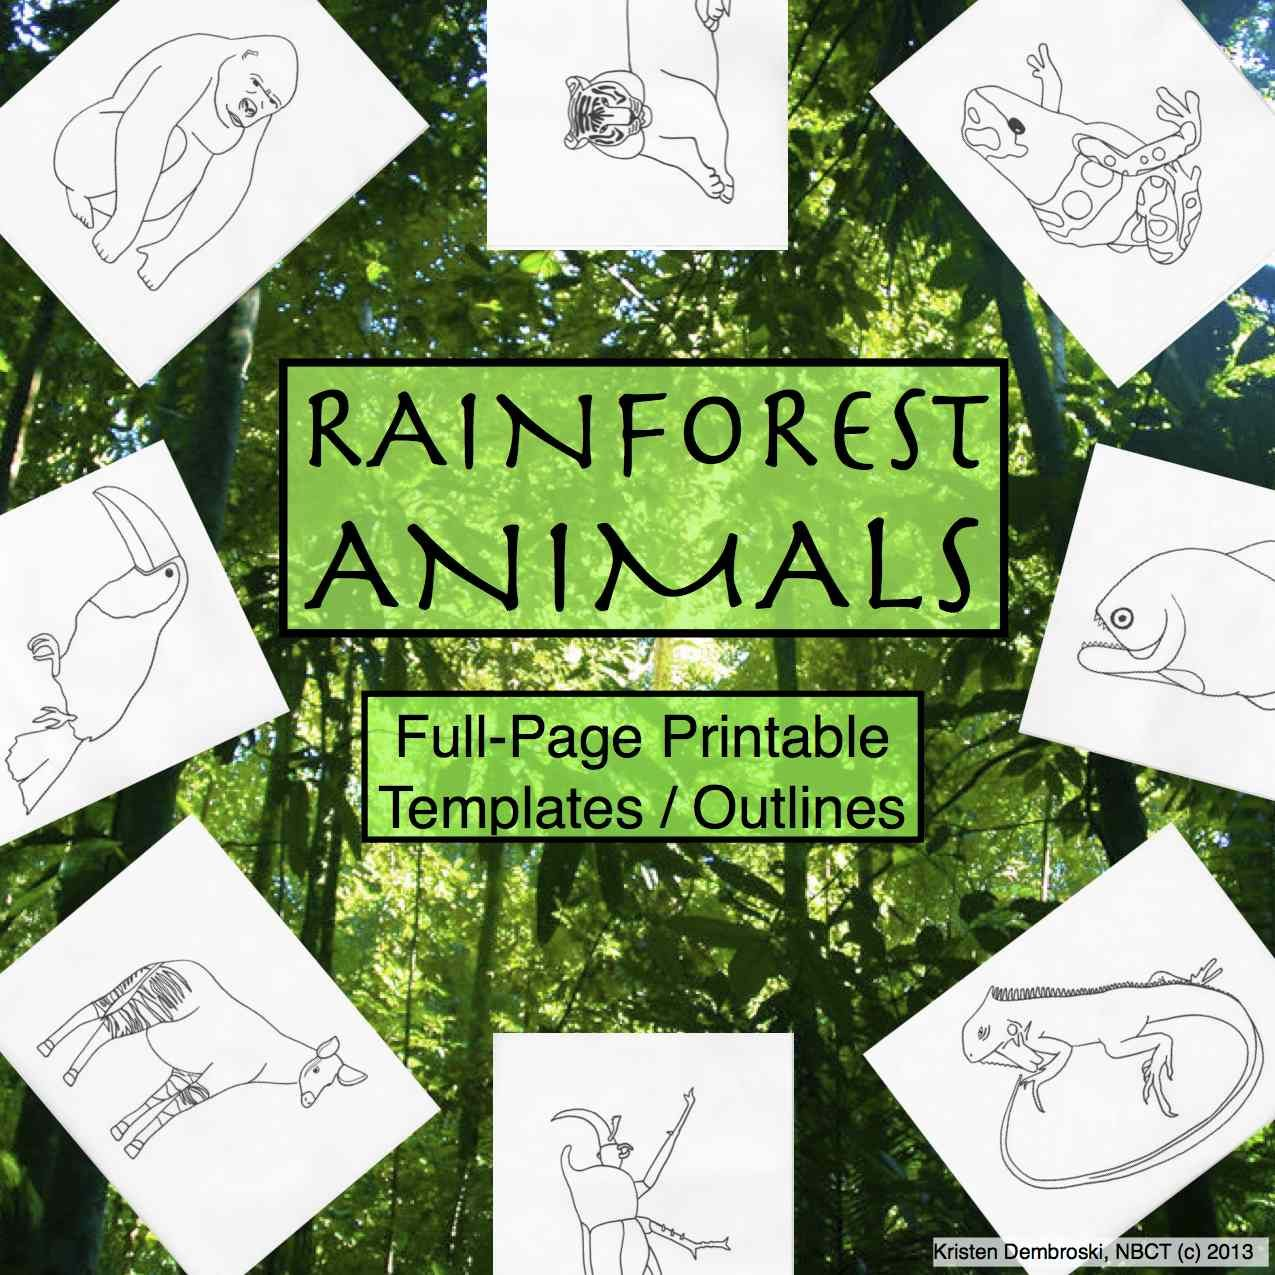 This Is A Pack Of 30 Blank Hand Drawn Rainforest Animals They Are Full Page